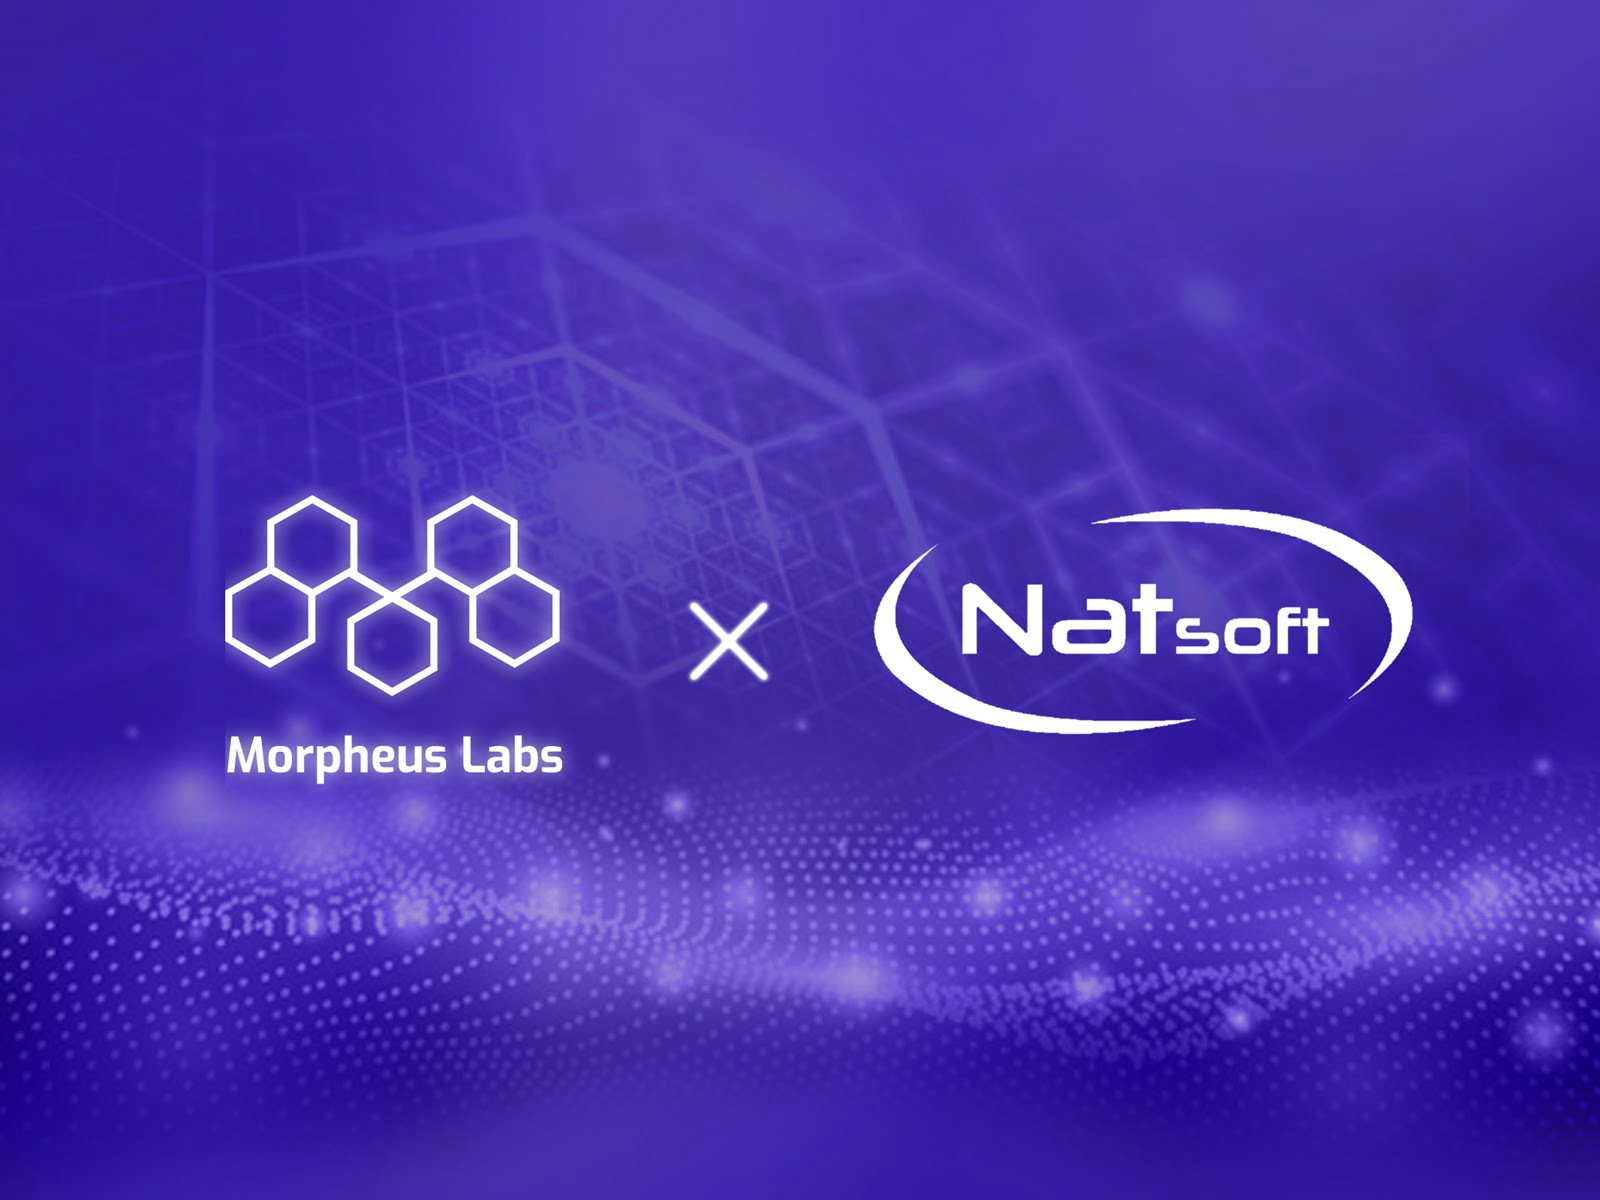 Morpheus Labs and Natsoft Corporation Team Up To Boost Value For Clients Through Unique Blockchain Solutions